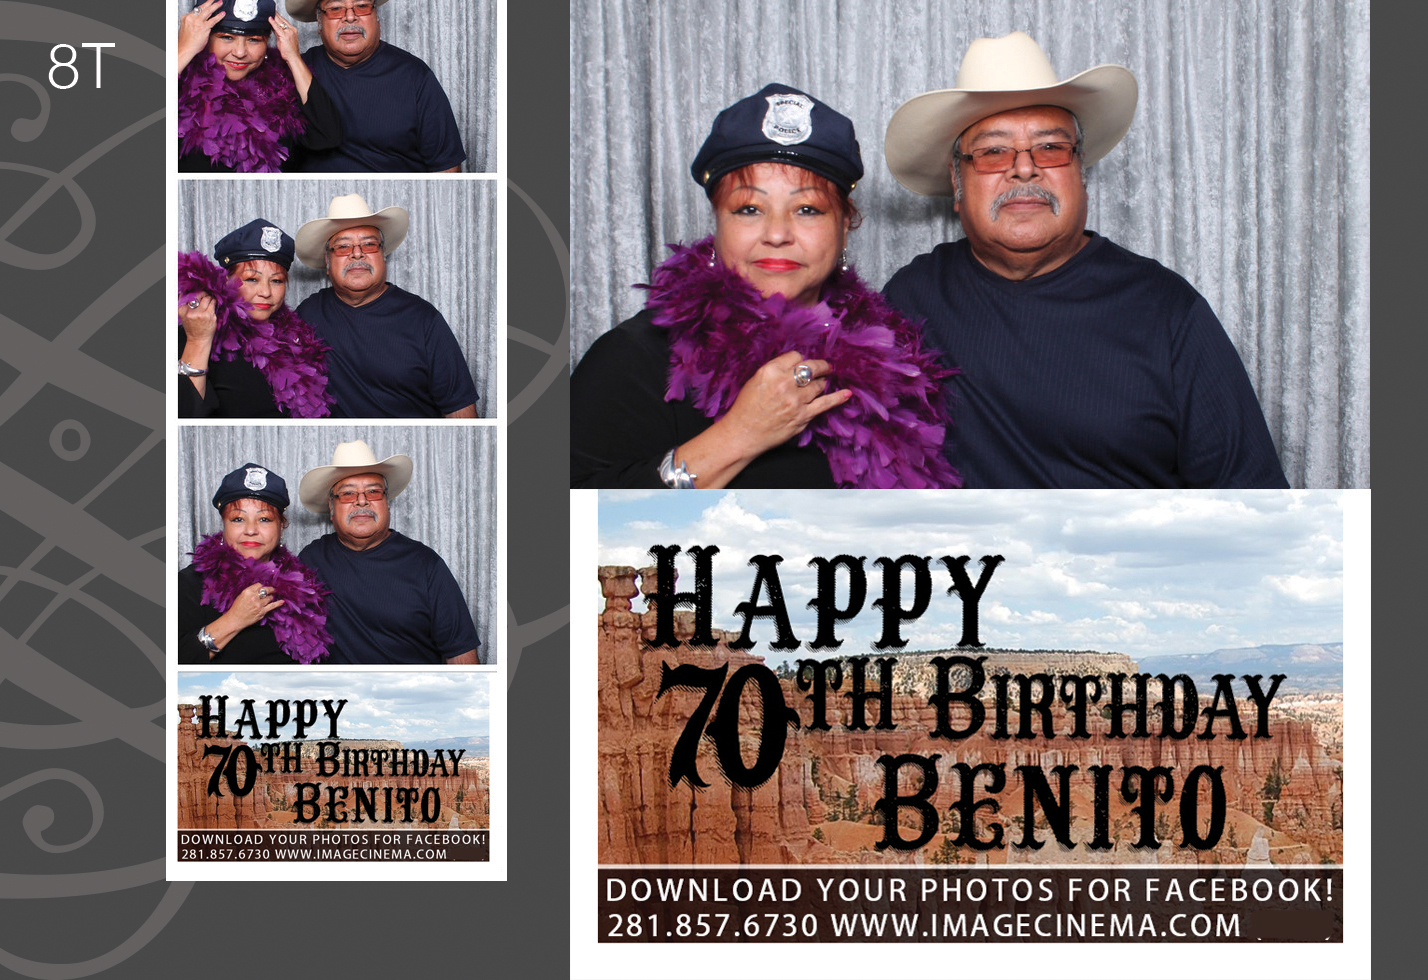 Photo Booth 8T